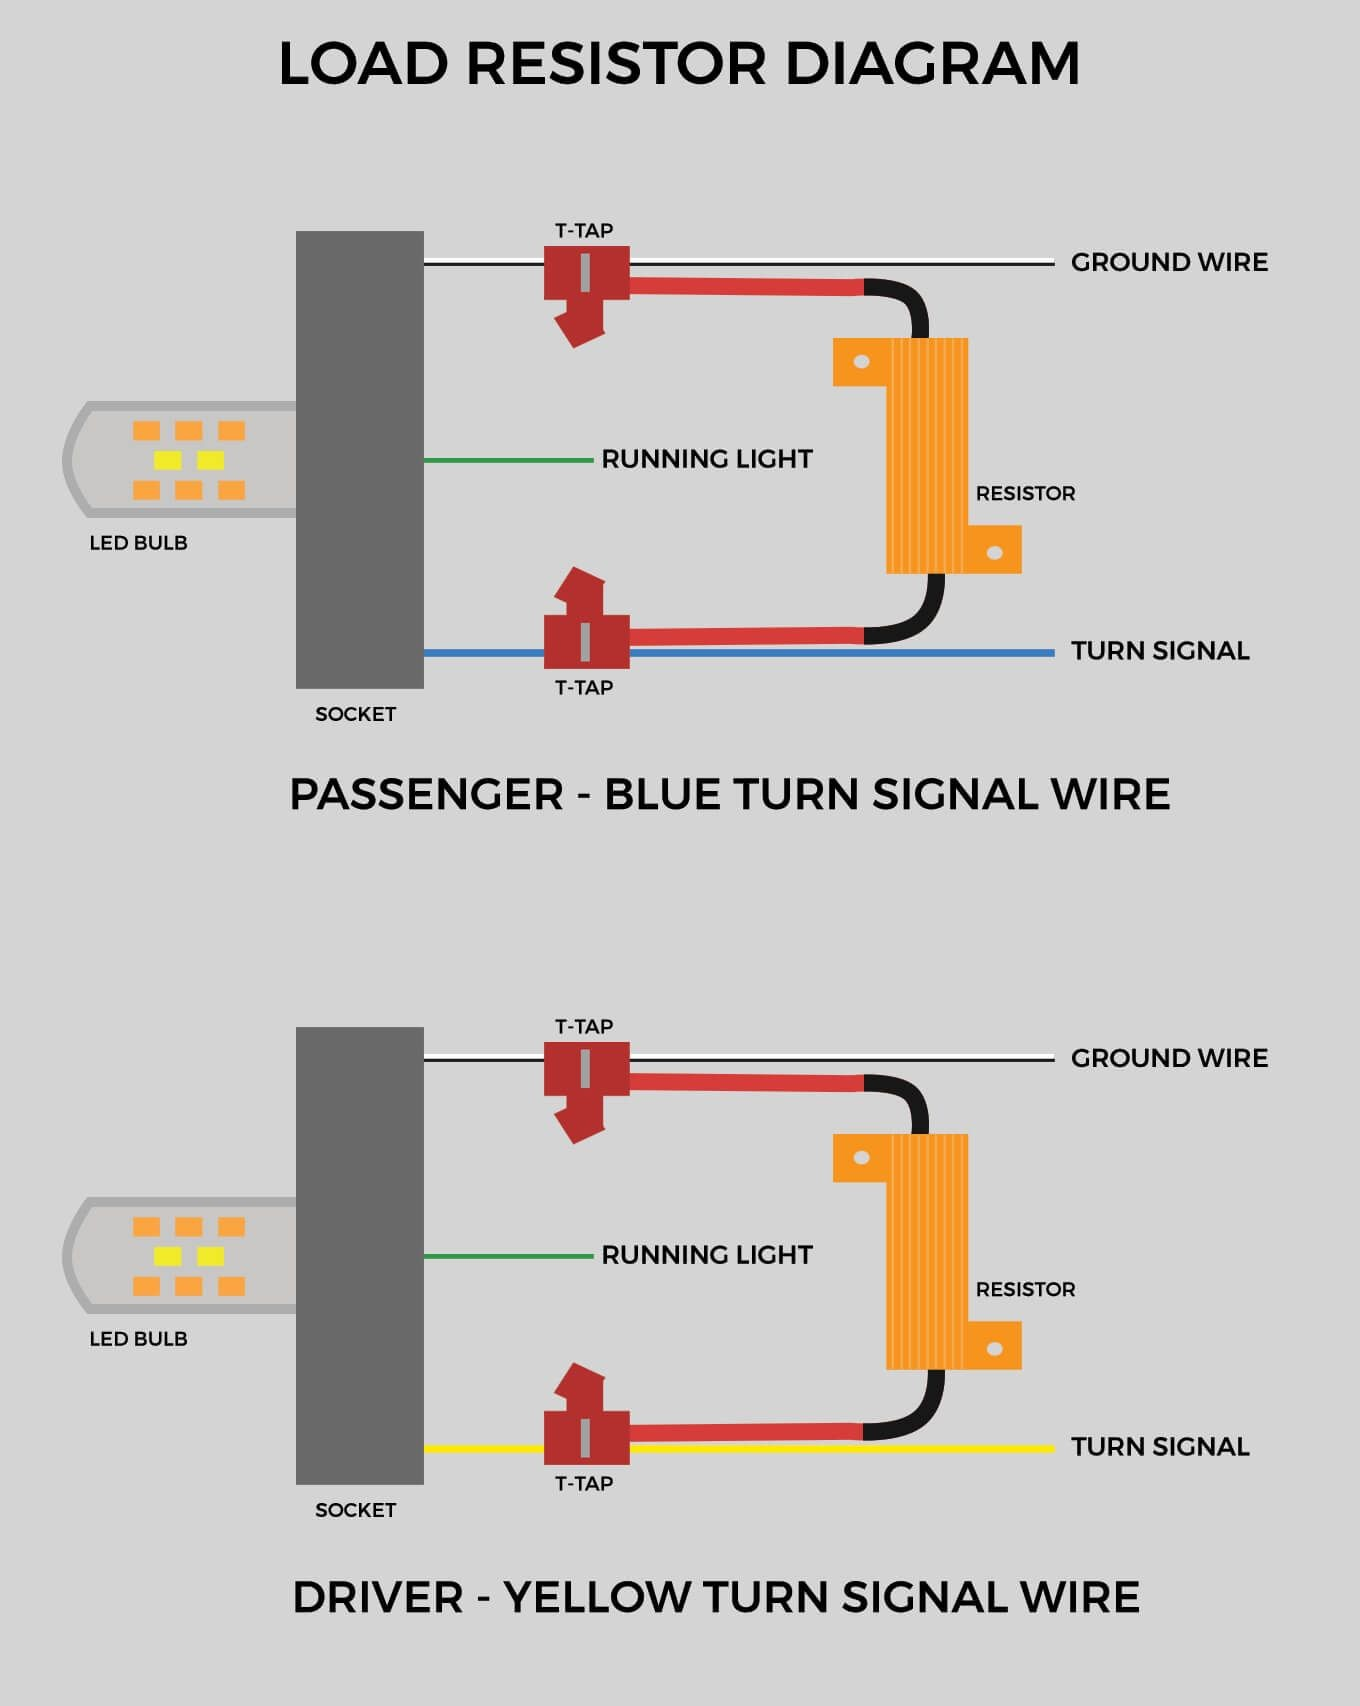 Turn Signal Flasher Wiring Diagram Turn Signal Light Wiring Diagram Wiring Diagram Paper Of Turn Signal Flasher Wiring Diagram Free Download S Series Wiring Diagram Wiring Diagram Database